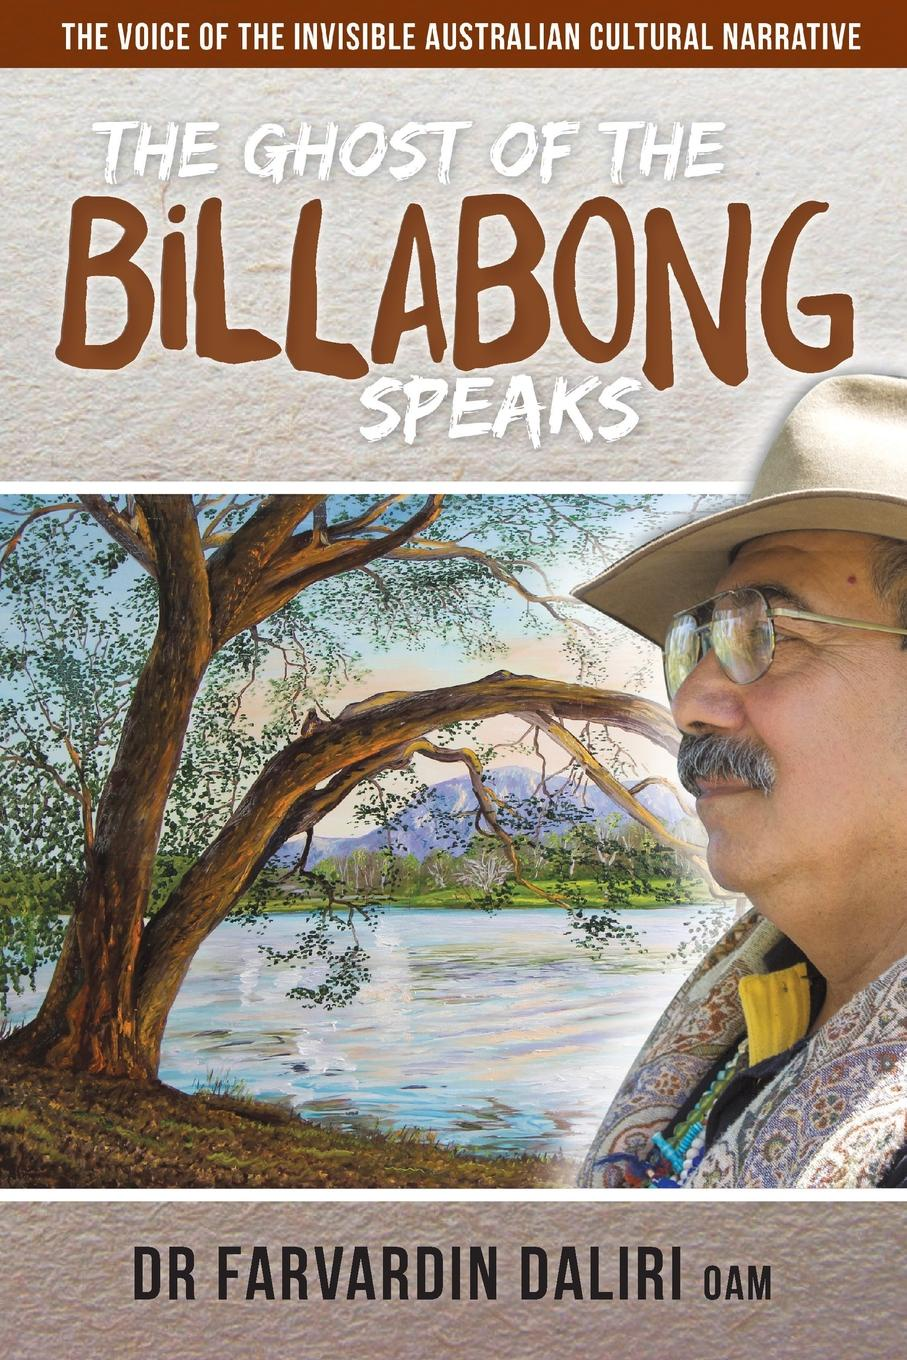 Dr Farvardin Daliri The Ghost of the Billabong Speaks. The Voice of Invisible Australian Cultural Narrative unlocking the invisible voice